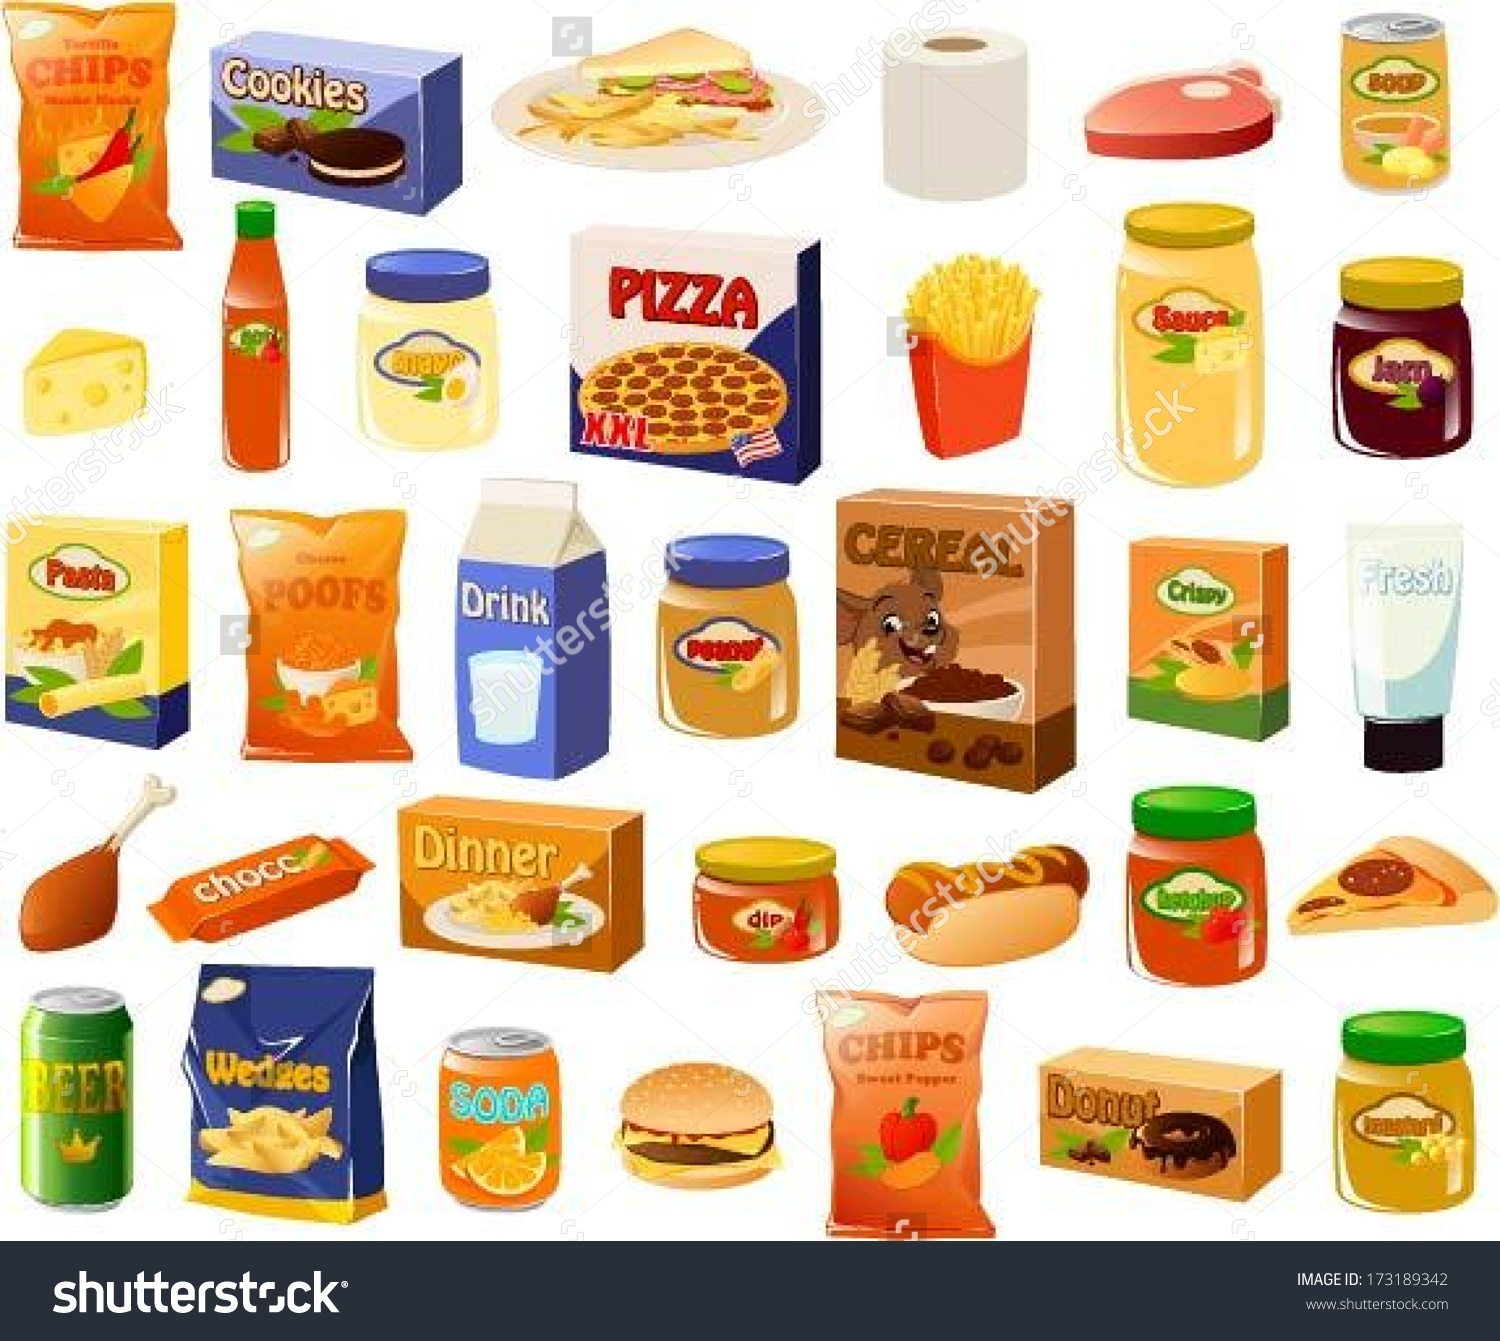 clip art royalty free stock Supermarket clipart frozen food. Free meal cliparts download